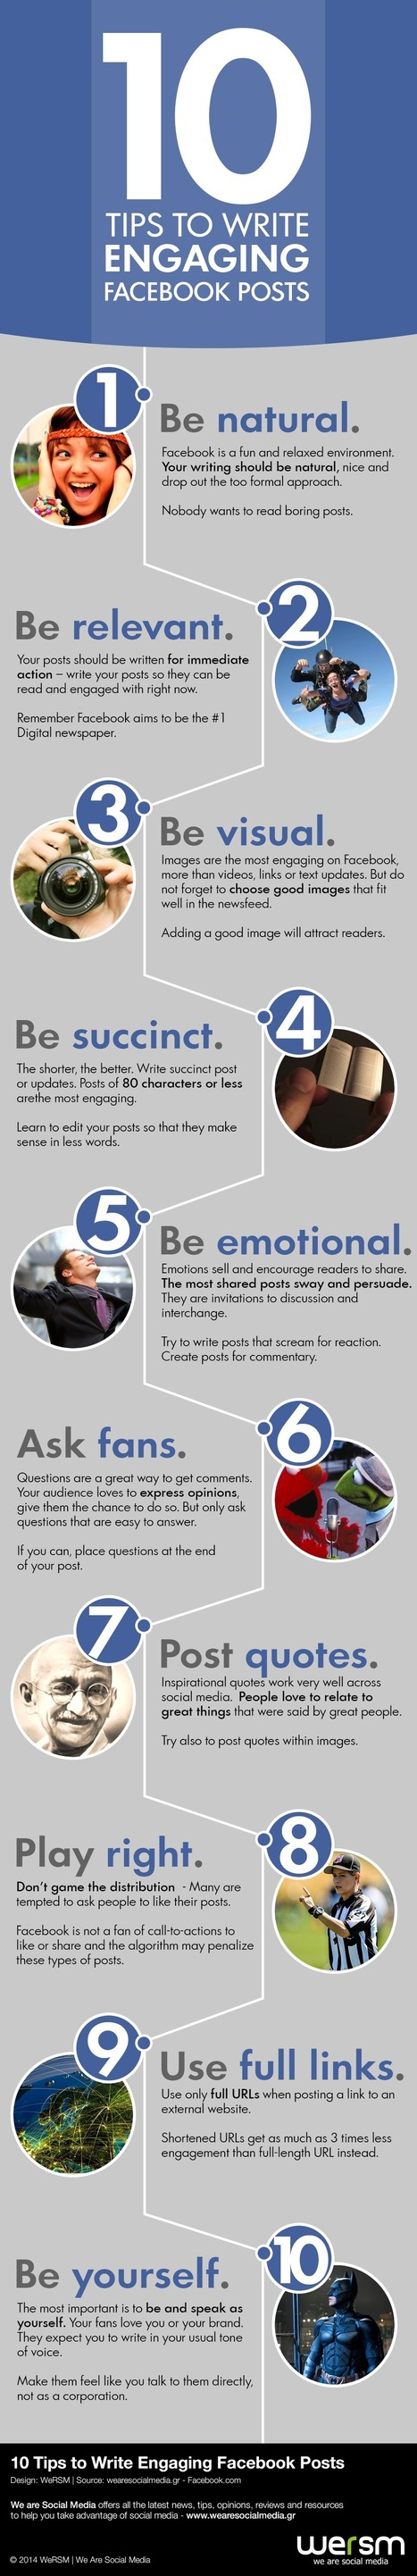 10 Tips to Maximize Your Facebook Engagement | Facebook for Business Marketing | Scoop.it